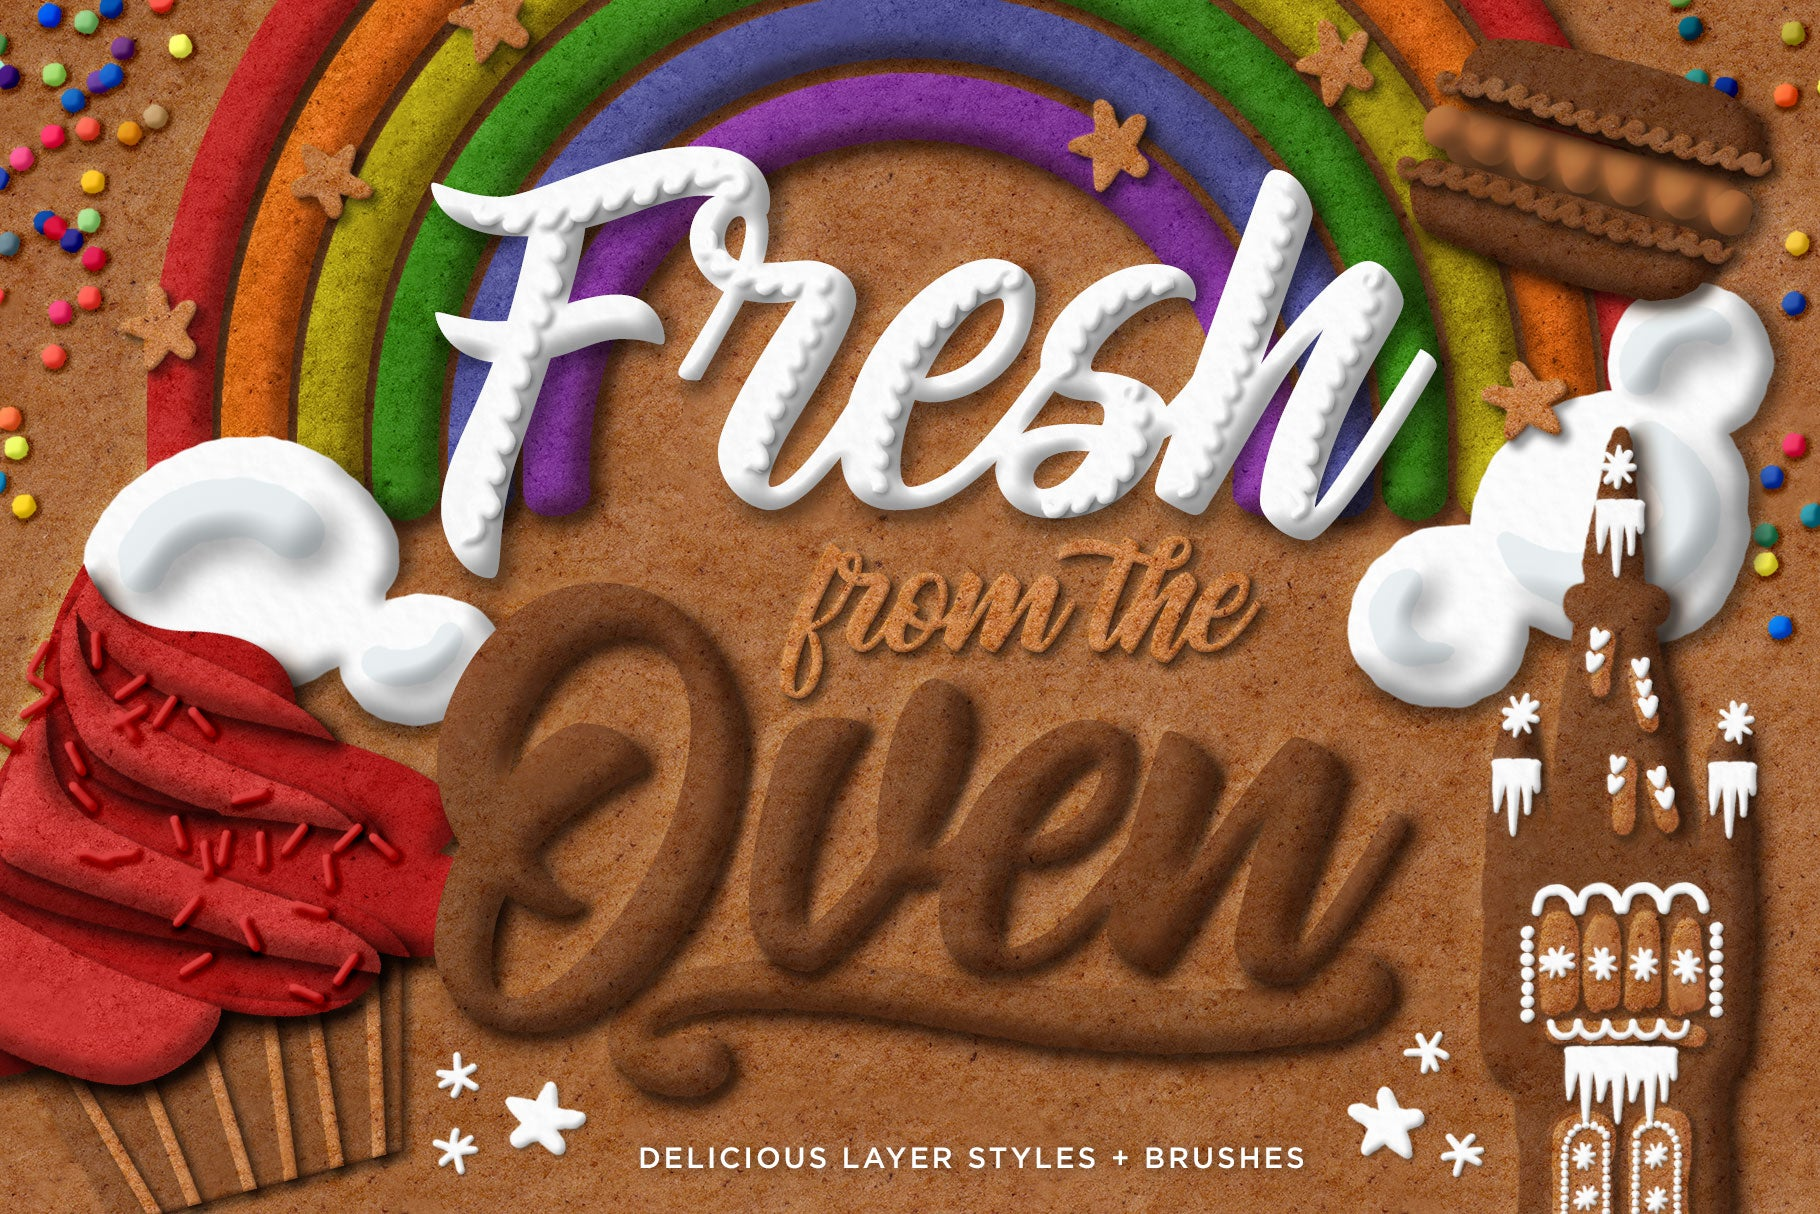 Fresh from the Oven: Photoshop Layer Styles Creative Kit for Food Typography & Food Art - Creators Couture